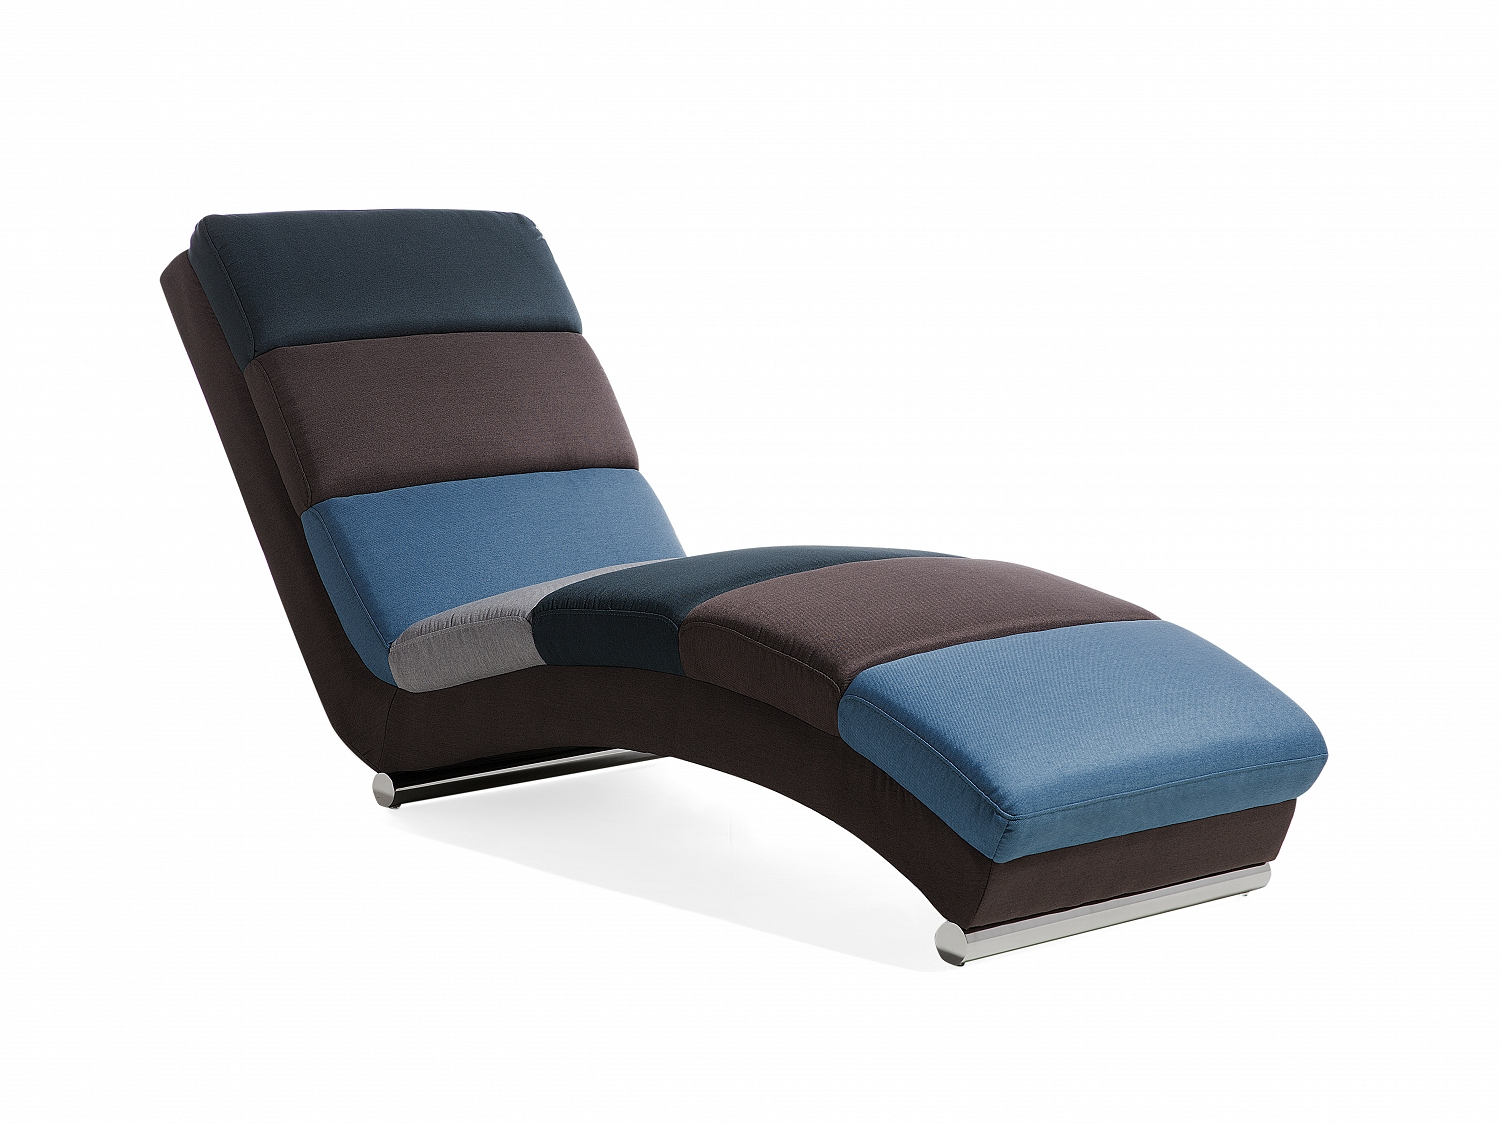 Chaise longue fabric sofa floor lounger lounge chair day for Chaise longue lounge